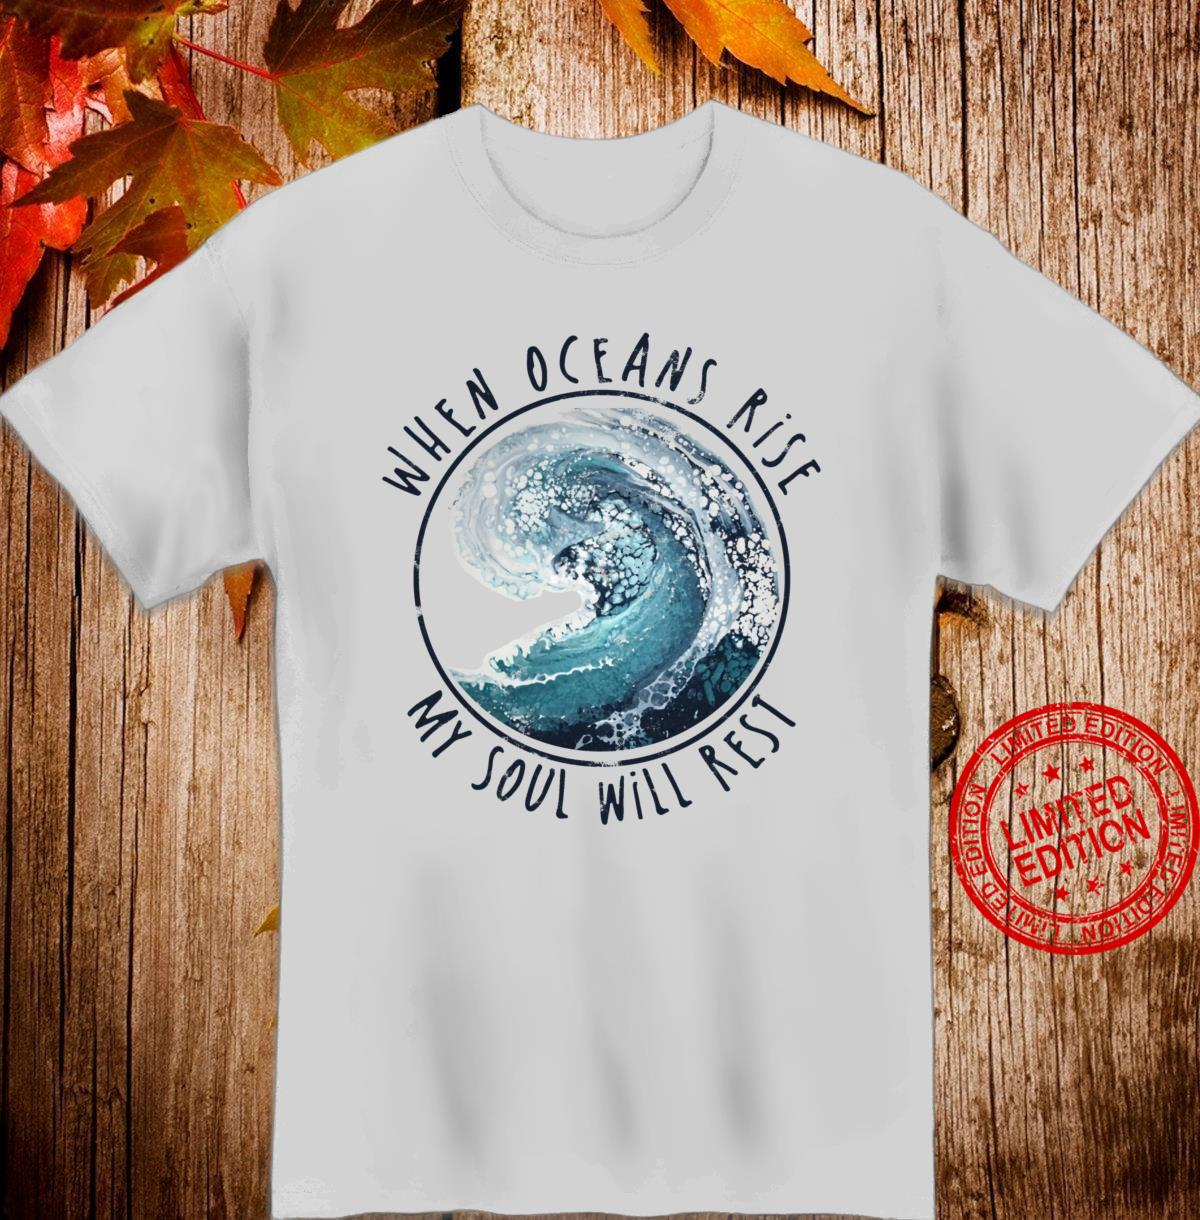 When Oceans Rise My Soul Will Rest Christian Shirt